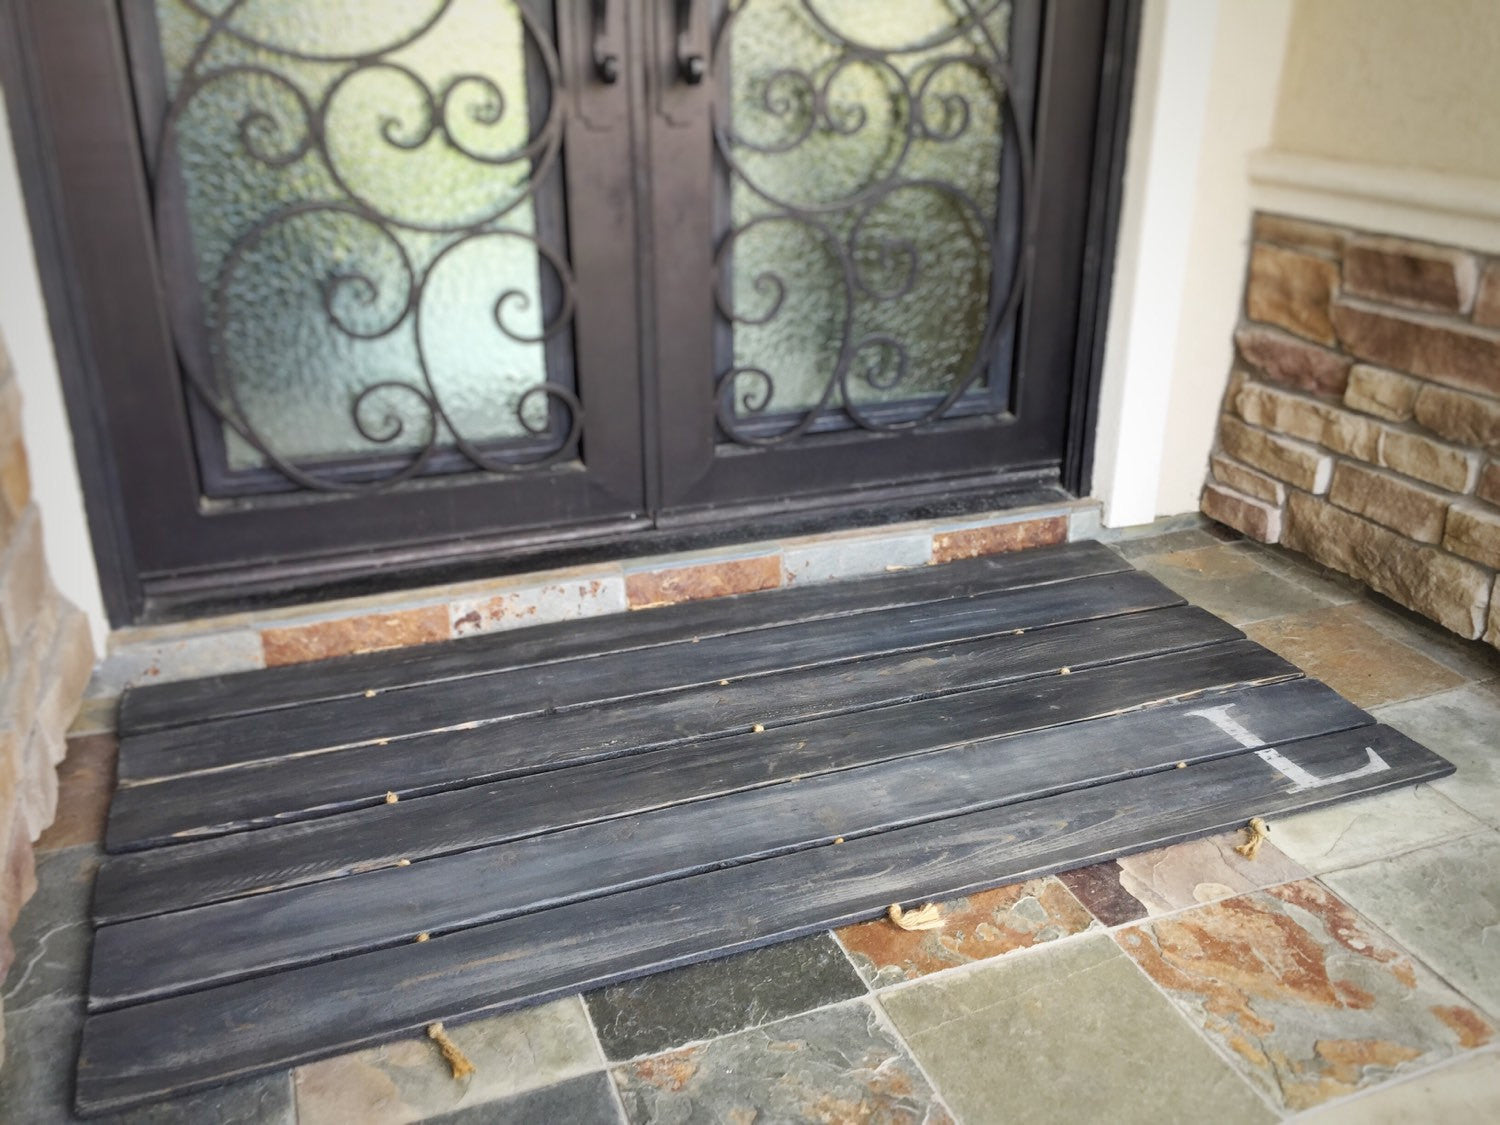 Wood Doormat - Double Door - Monogram, Custom Distressed: 2-TONE DARK GREY shown - Sartain's Awesome Shoppe